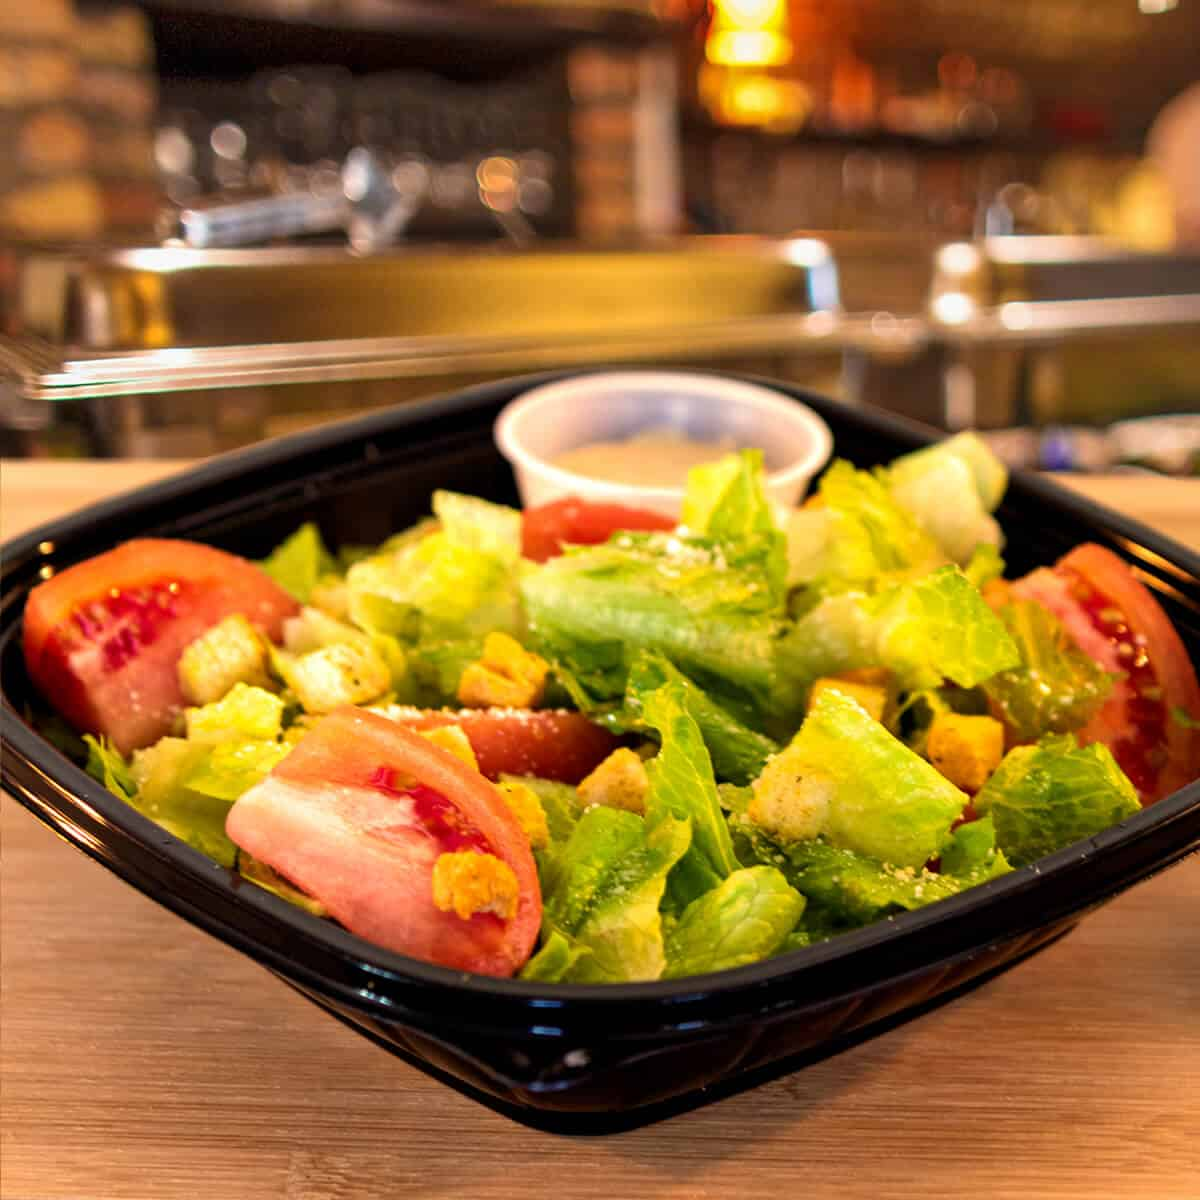 Garden salad with lettuce, tomatoes and croutons.